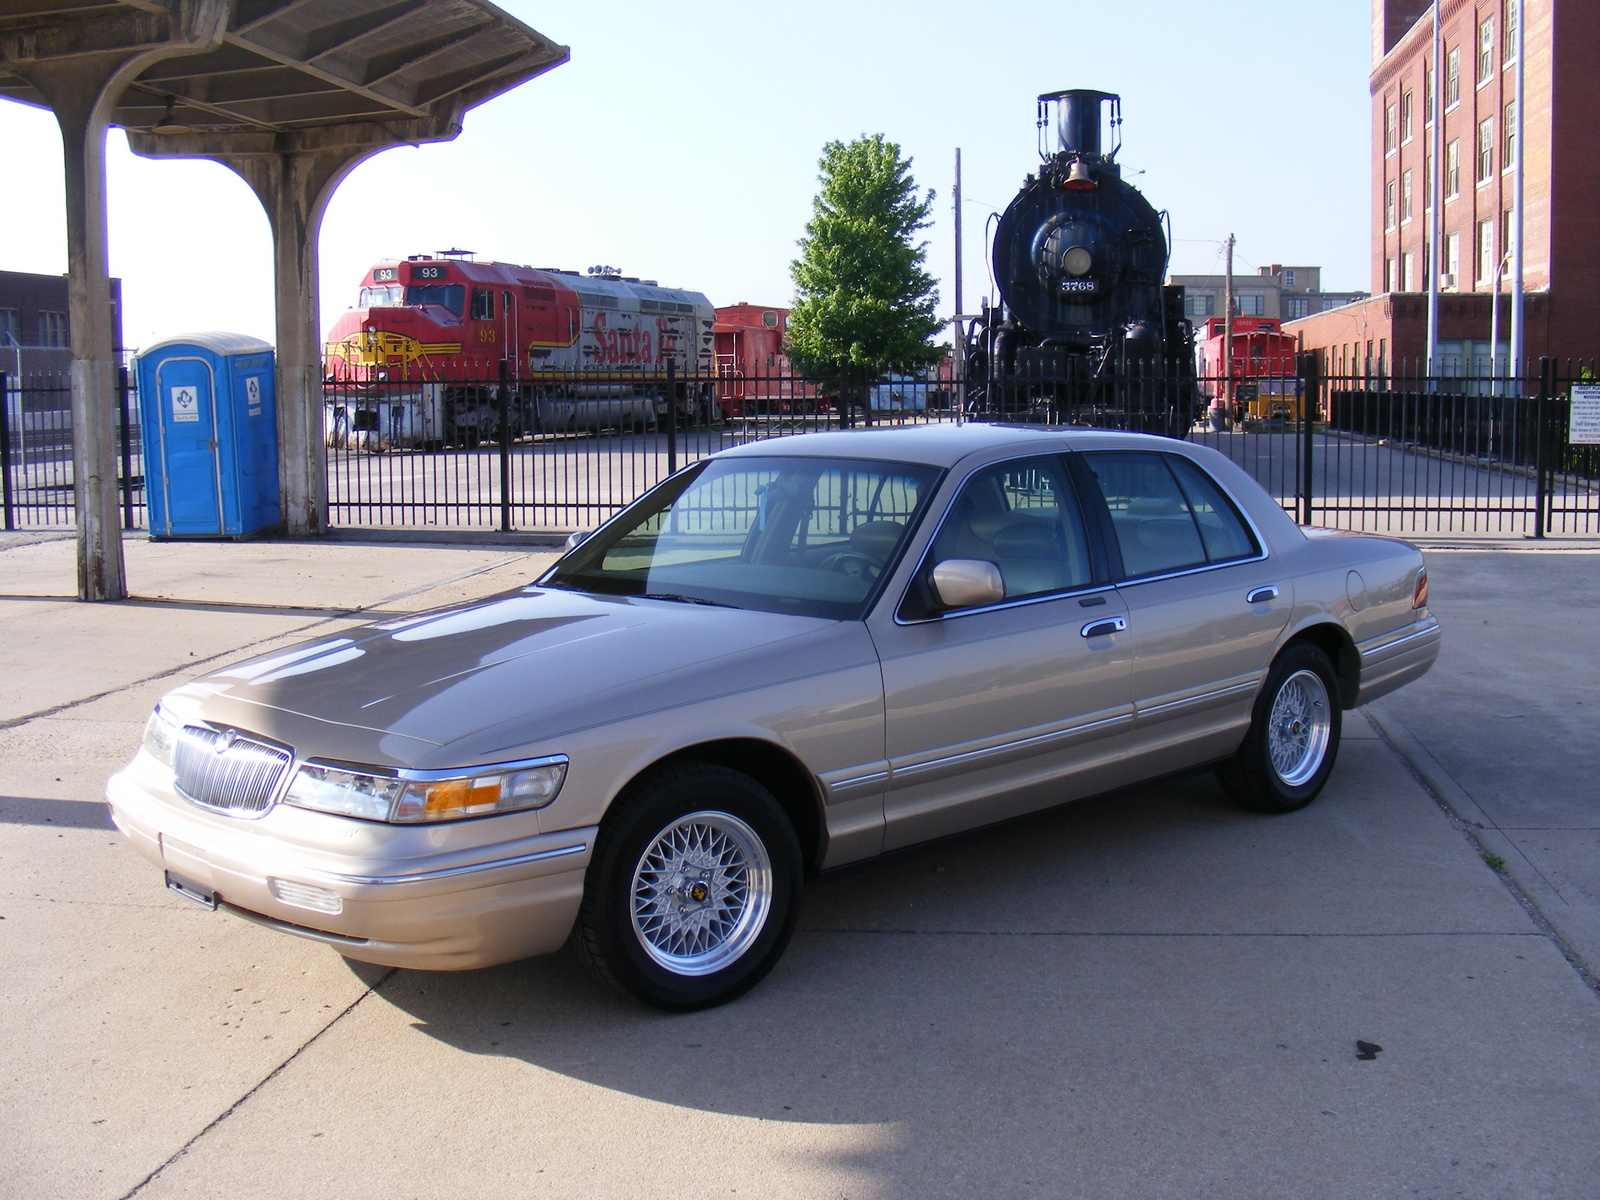 1997 Mercury Grand Marquis 4 Dr LS Sedan picture